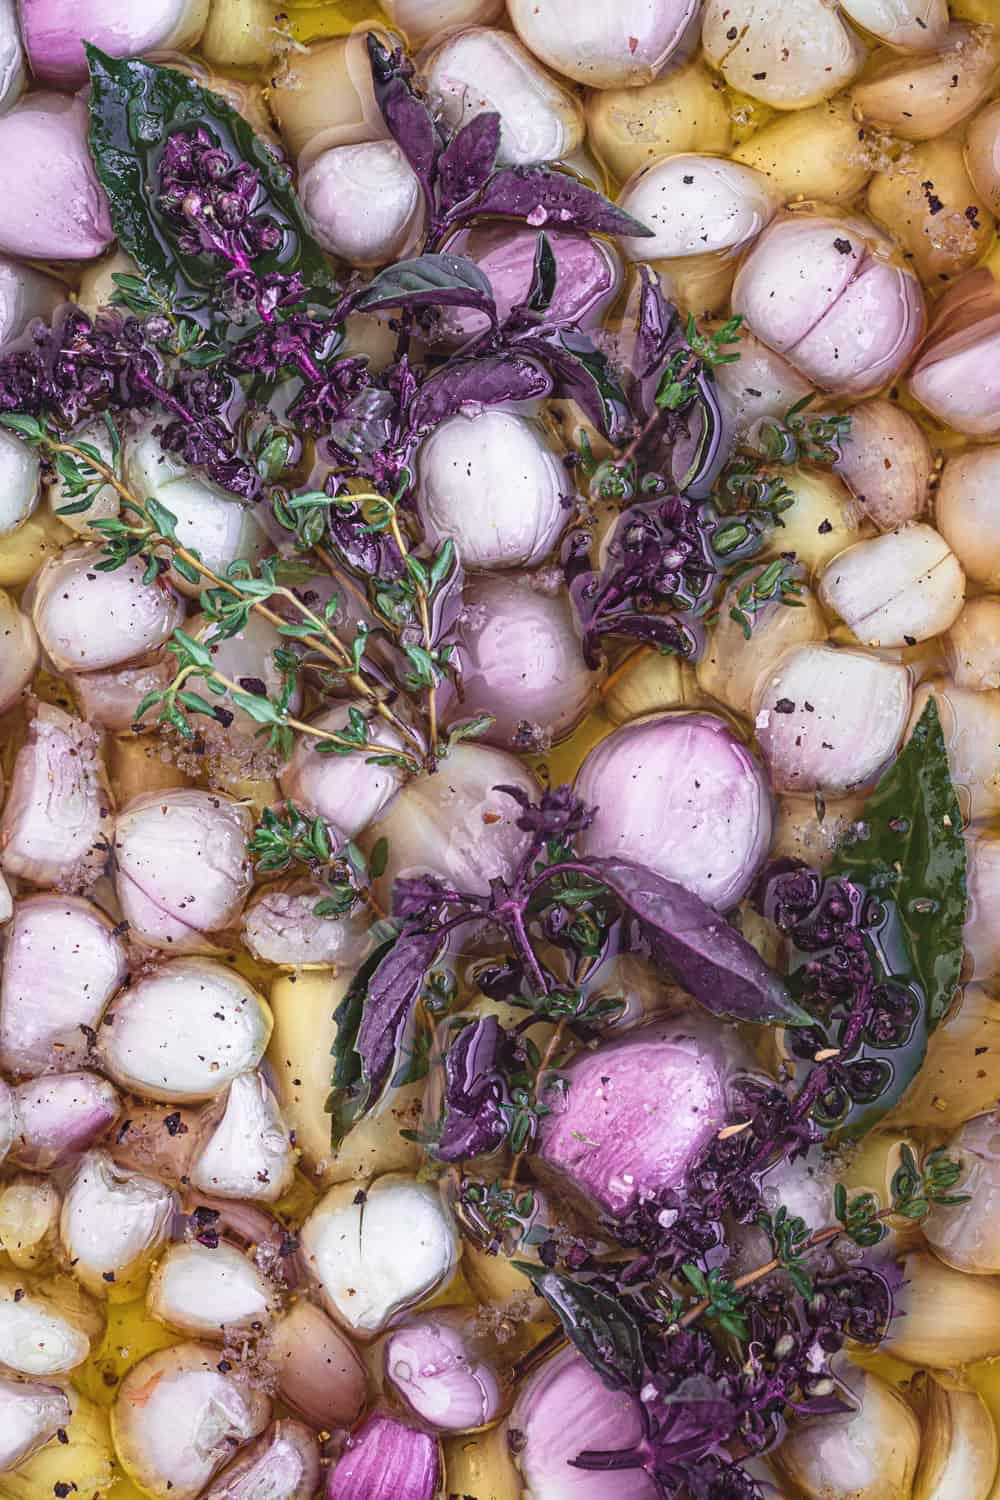 In process shot of shallots submerged in olive oil with fresh herbs, salt and pepper; pre-oven, in an oven proof dish and overhead shot.